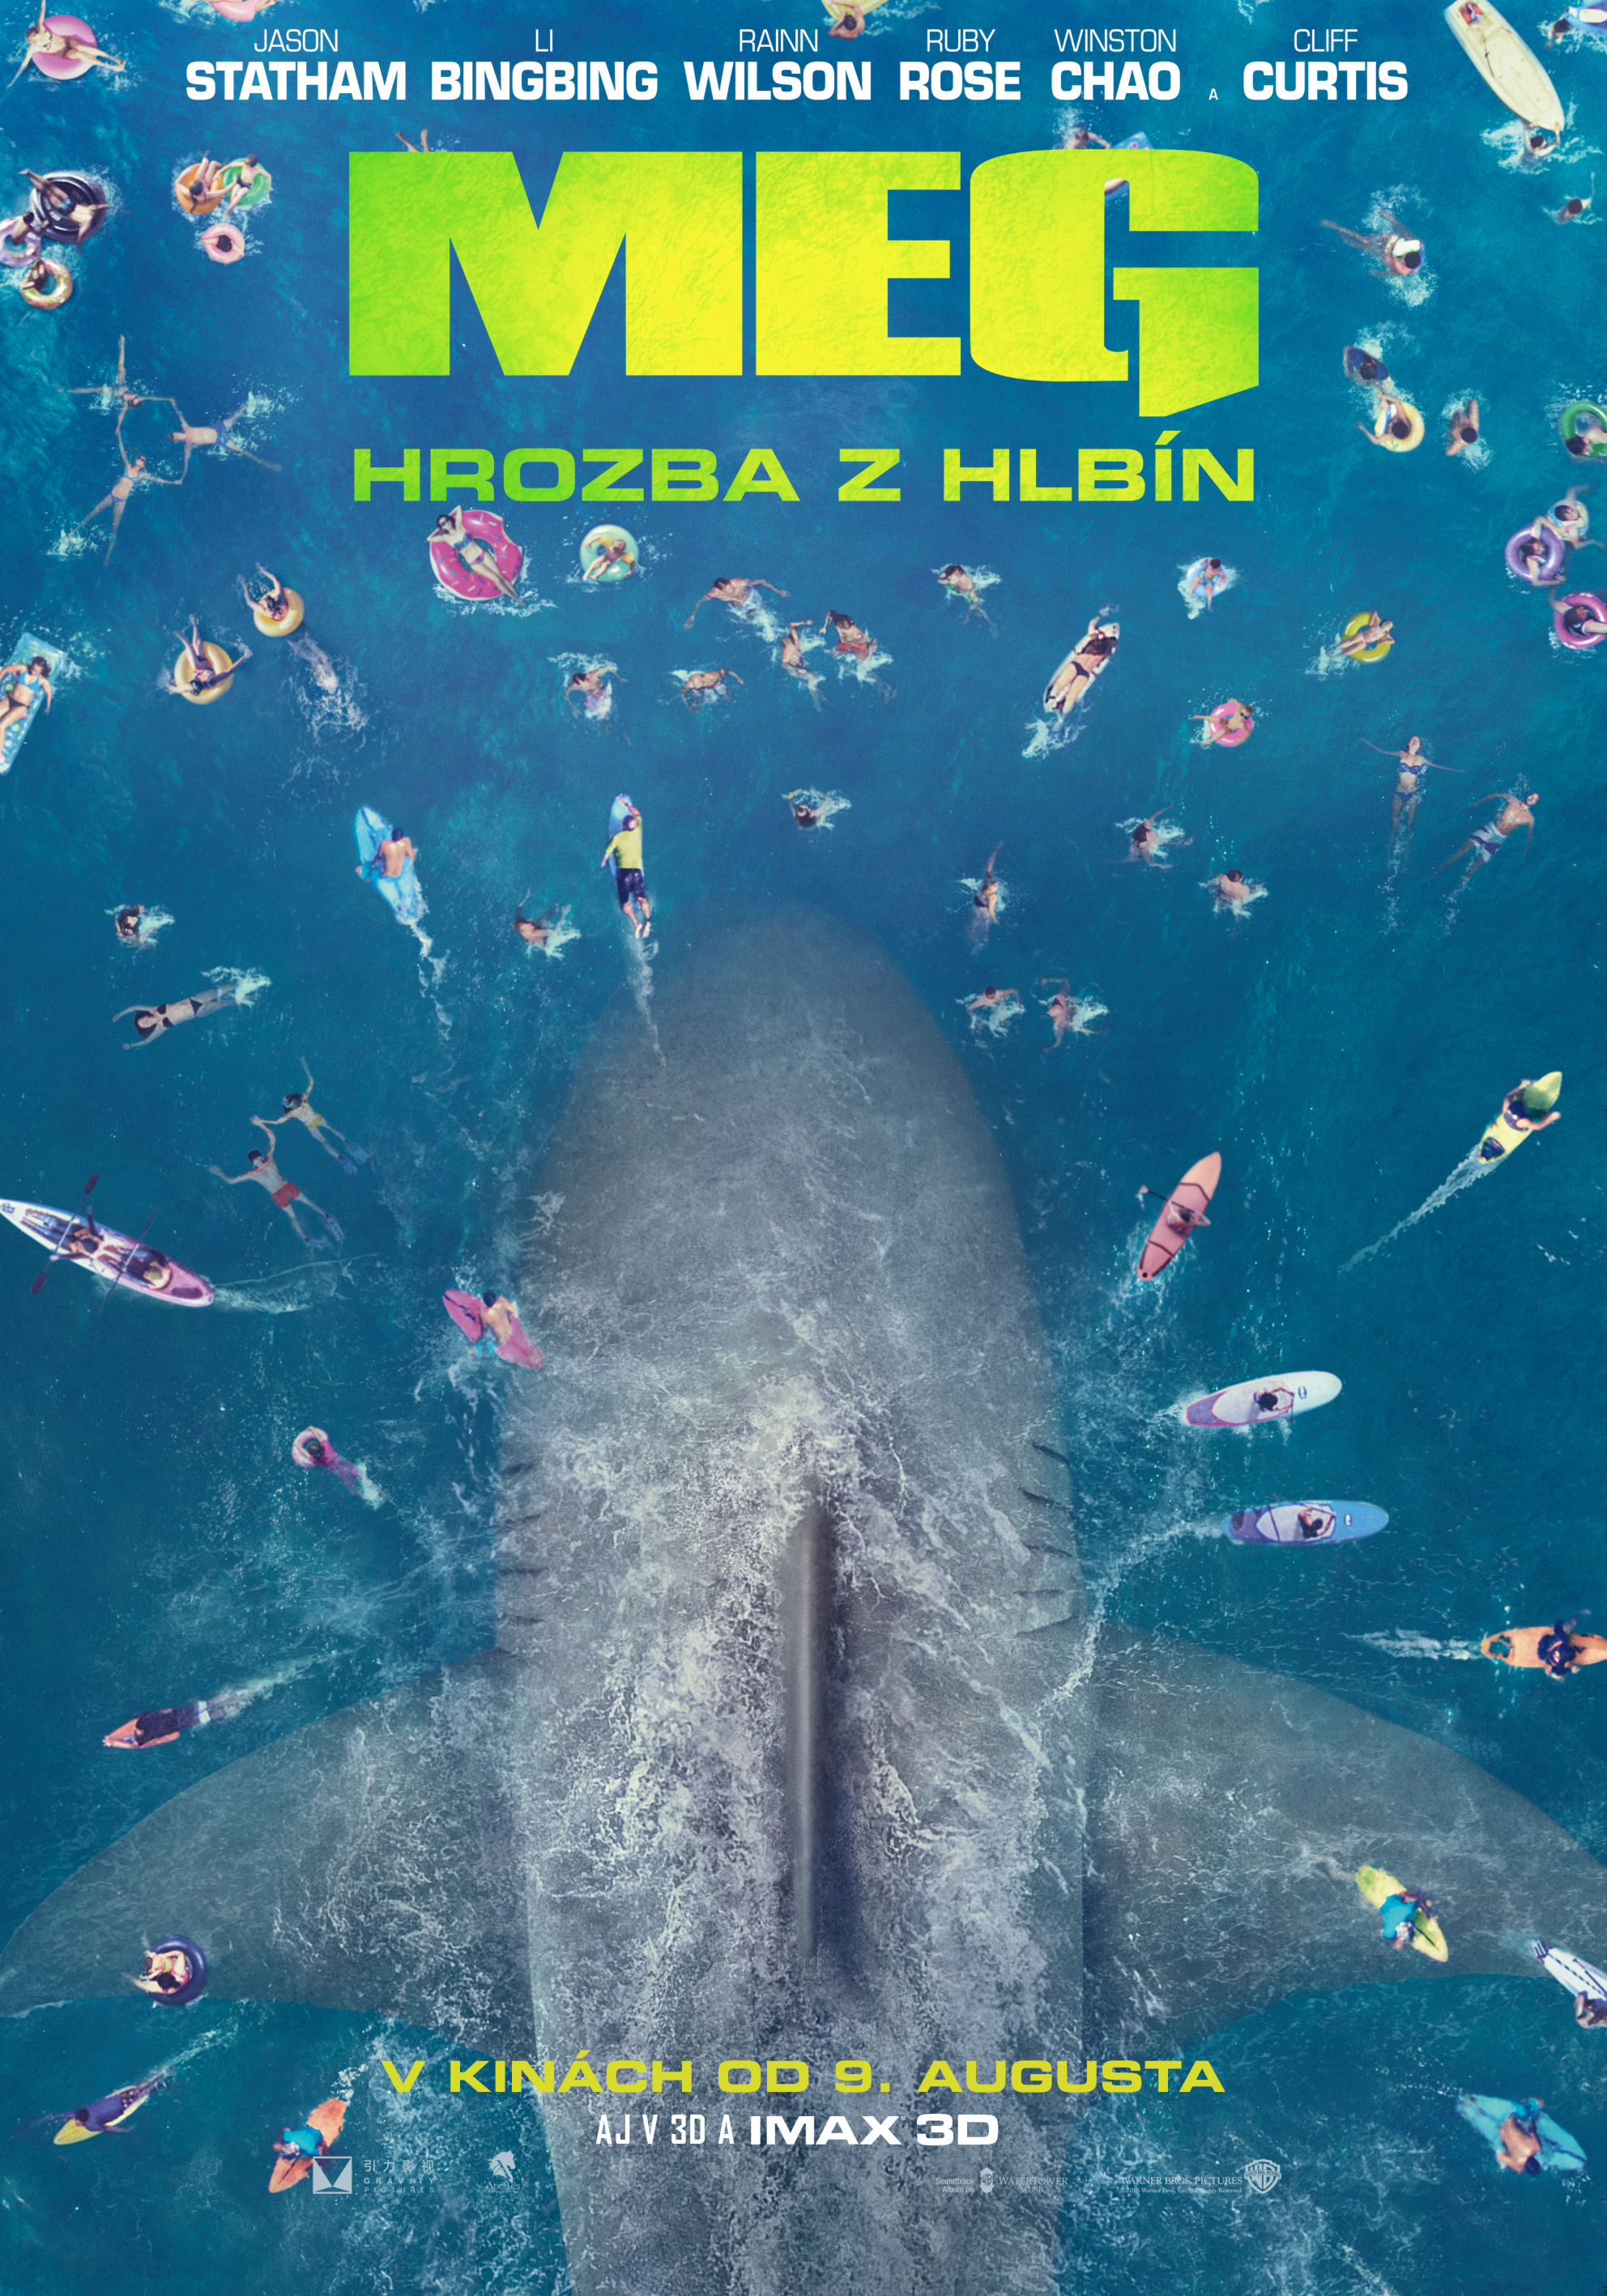 https://www.continental-film.sk/images/stories/postery/meg-hrozba-z-hlbin-poster.jpg